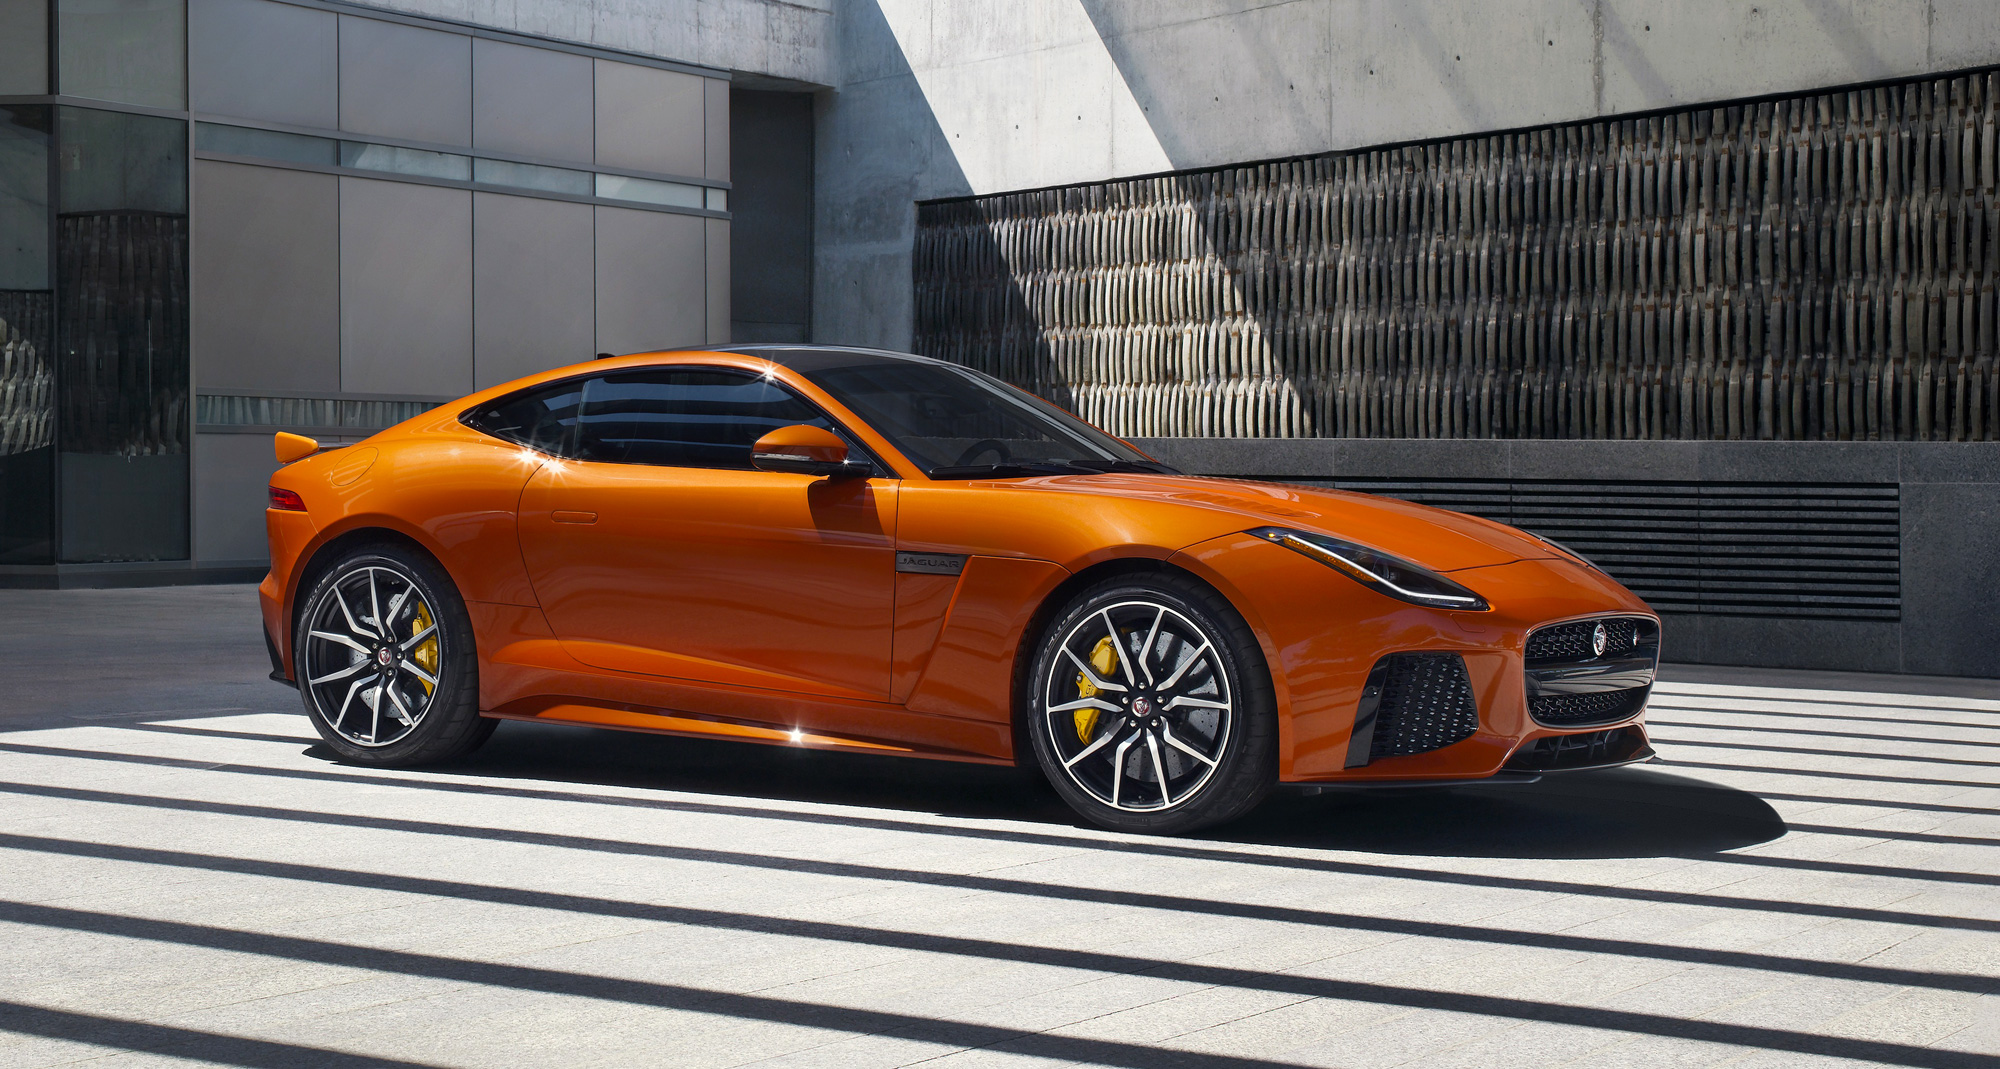 The F Type Svr Jaguars All Weather Supercar on yamaha drive